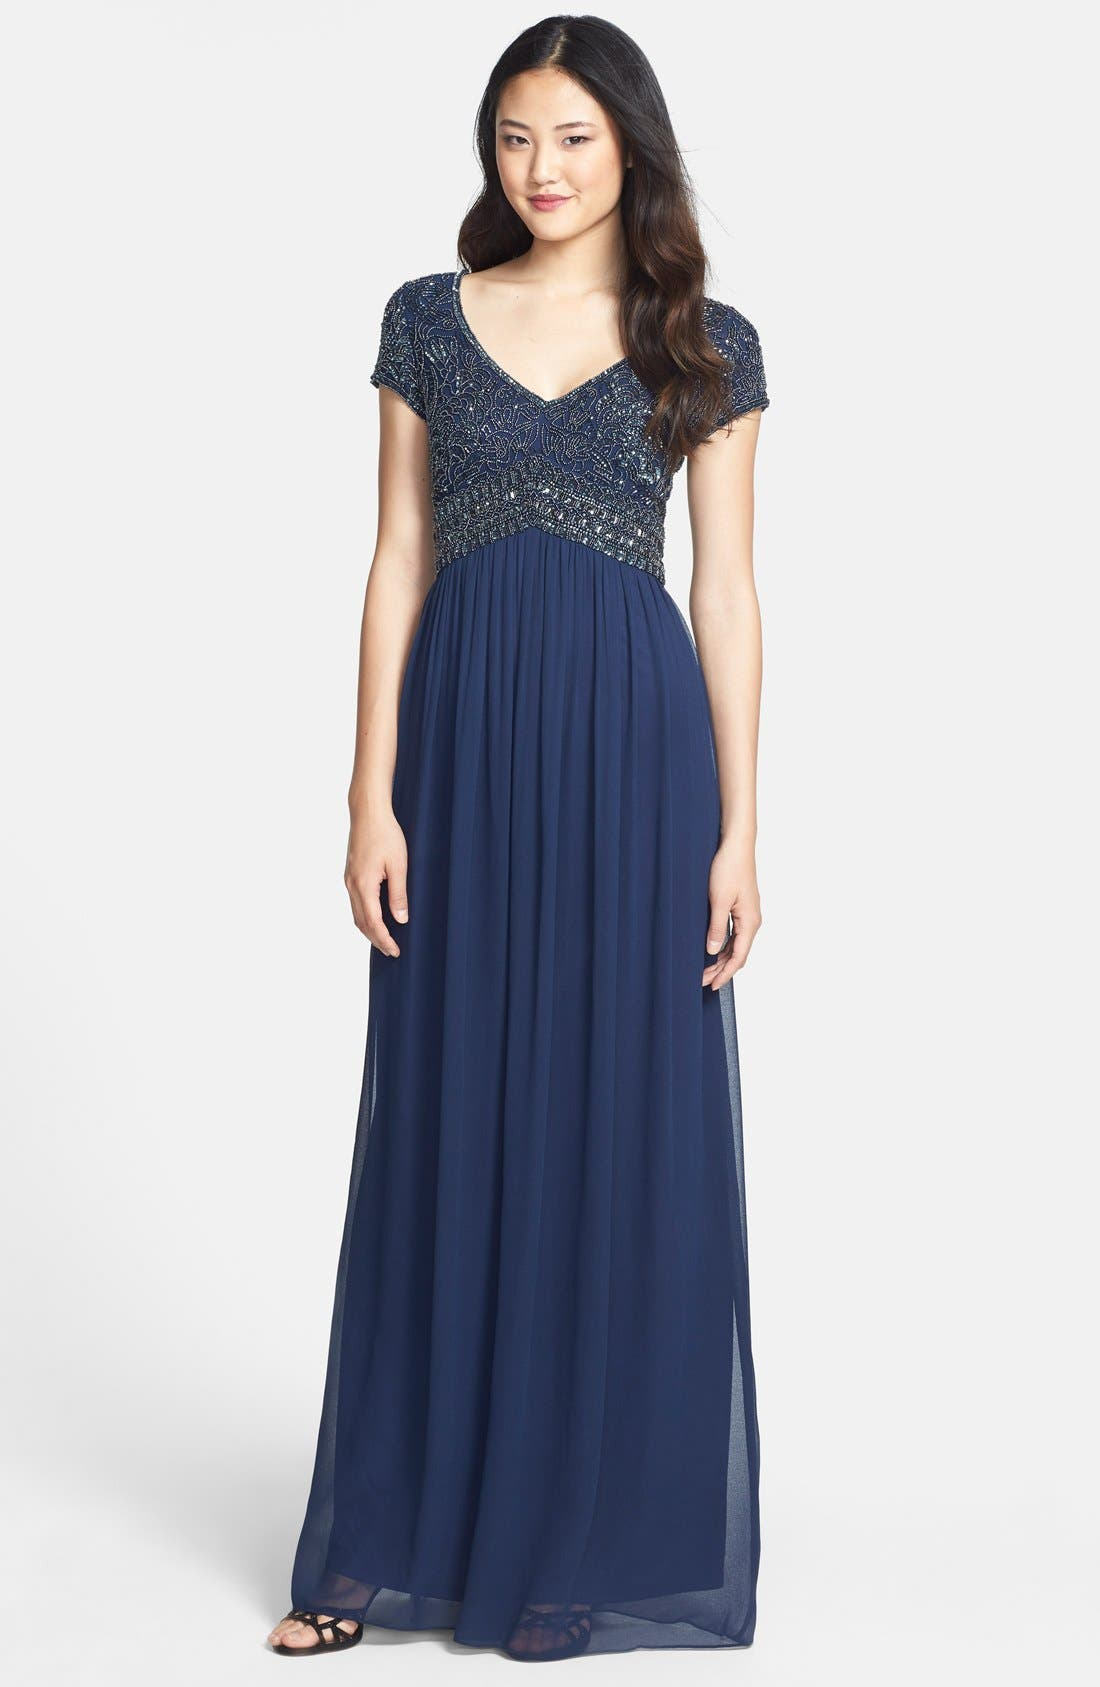 Main Image - Adrianna Papell Embellished Cap Sleeve Gown